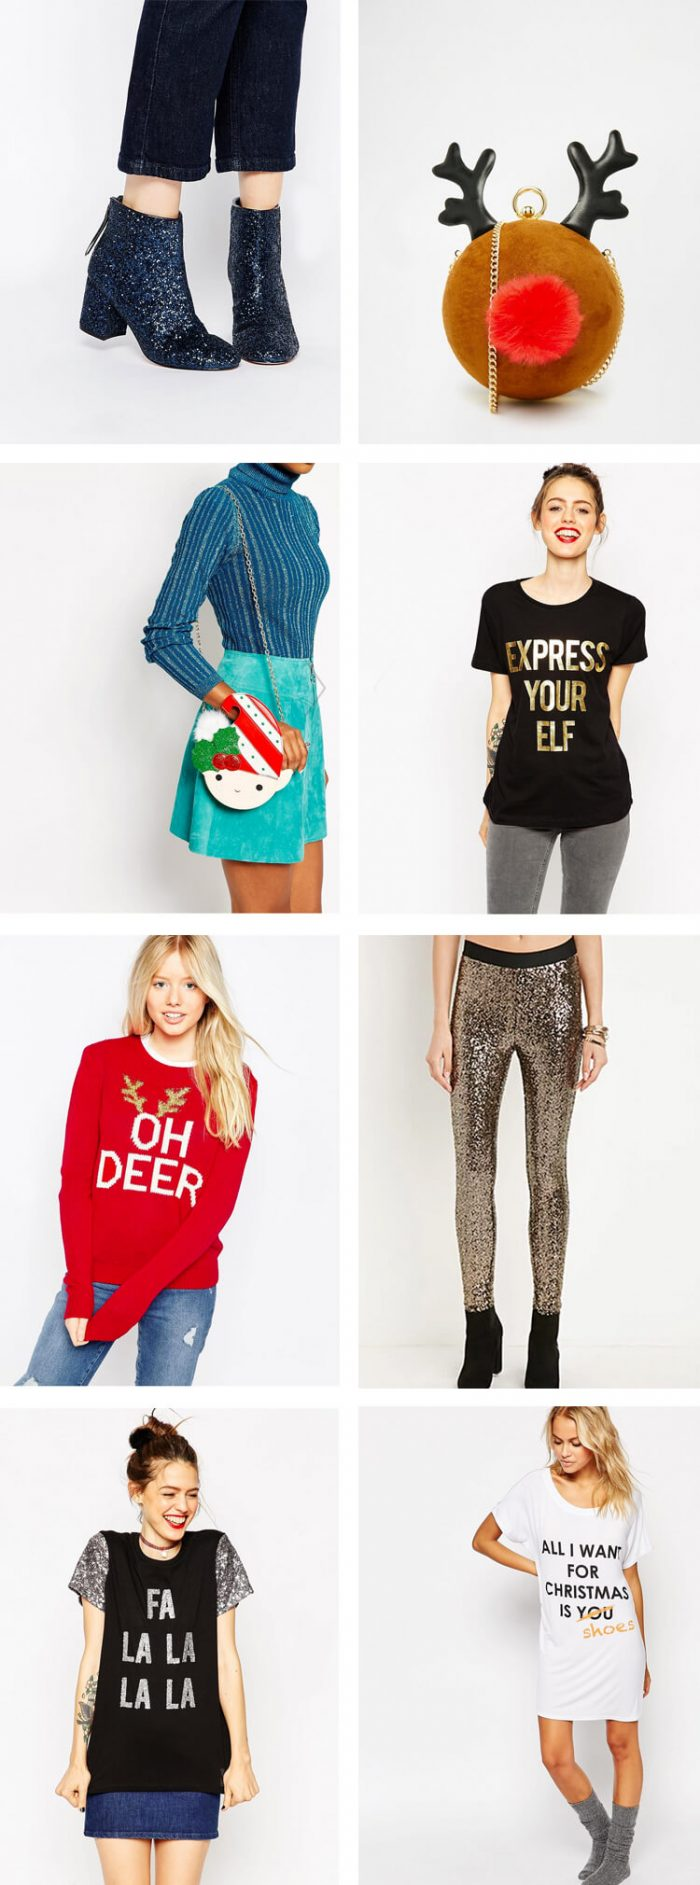 Christmas-Shopping-Gifts-Fashion-Outfits-ChristmasParty